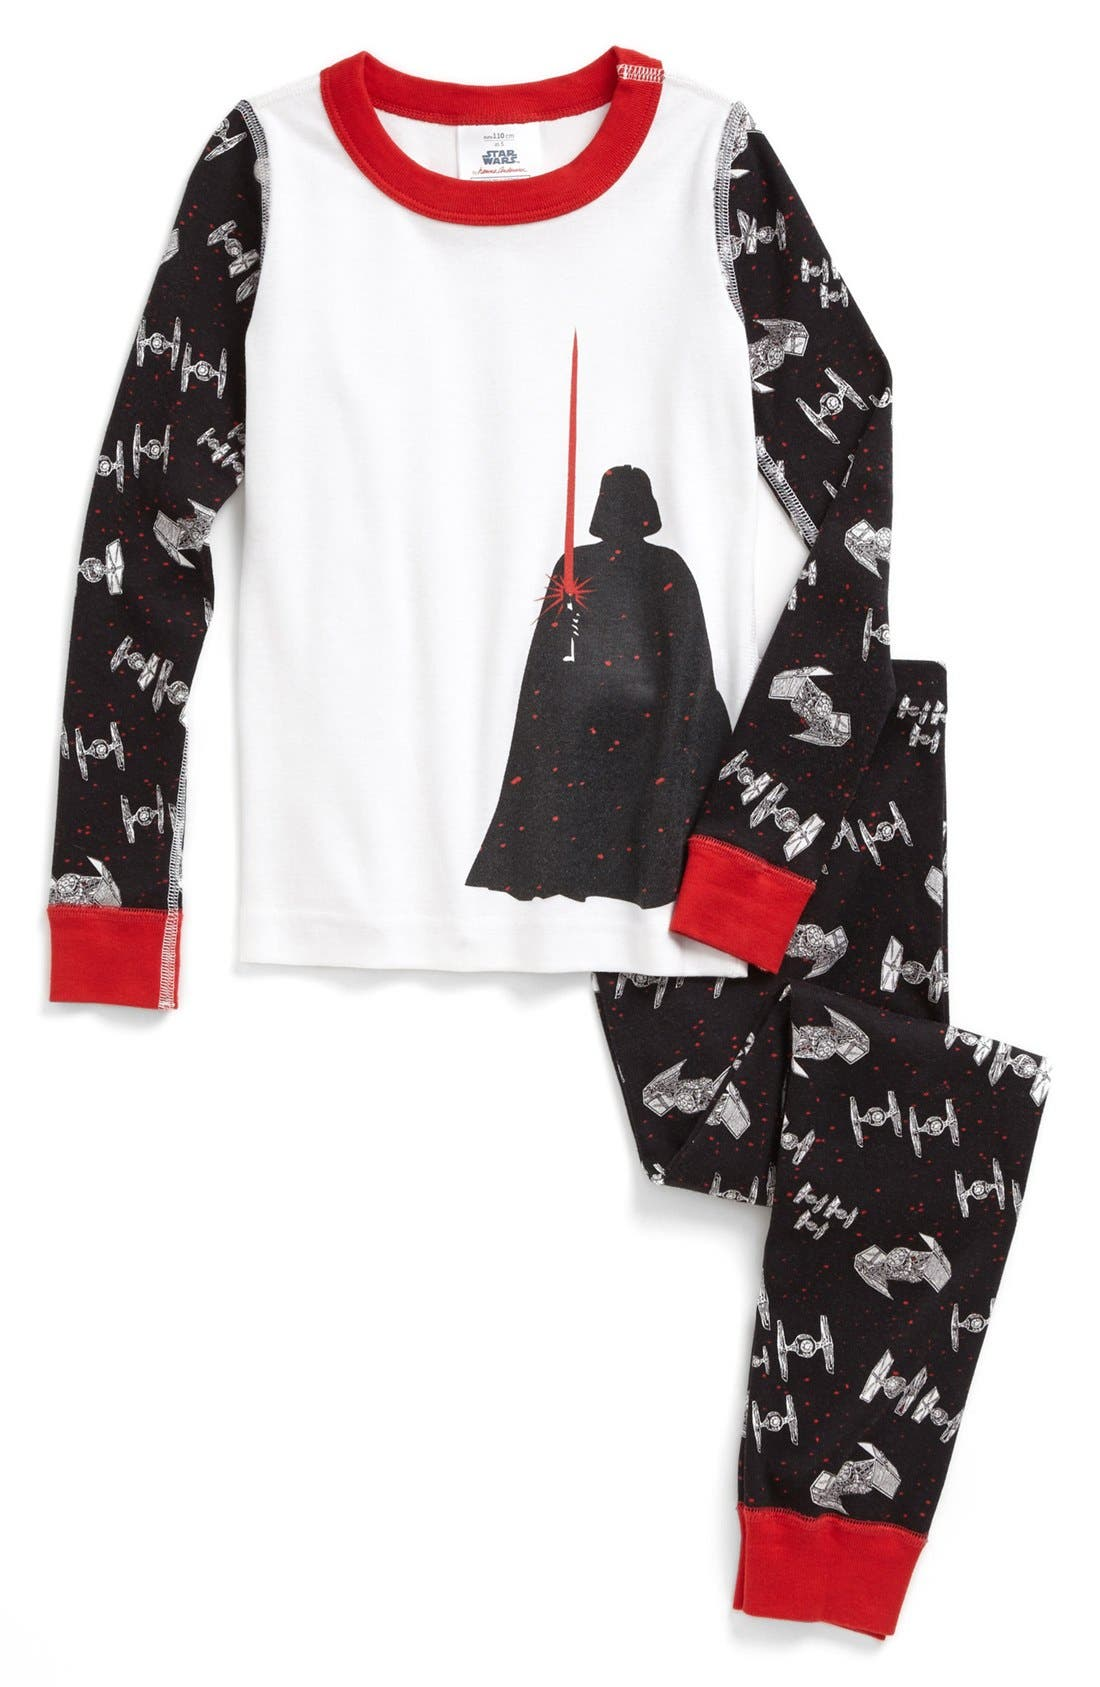 Alternate Image 1 Selected - Hanna Andersson 'Lightsaber' Organic Cotton Two-Piece Fitted Pajamas (Little Boys & Big Boys)